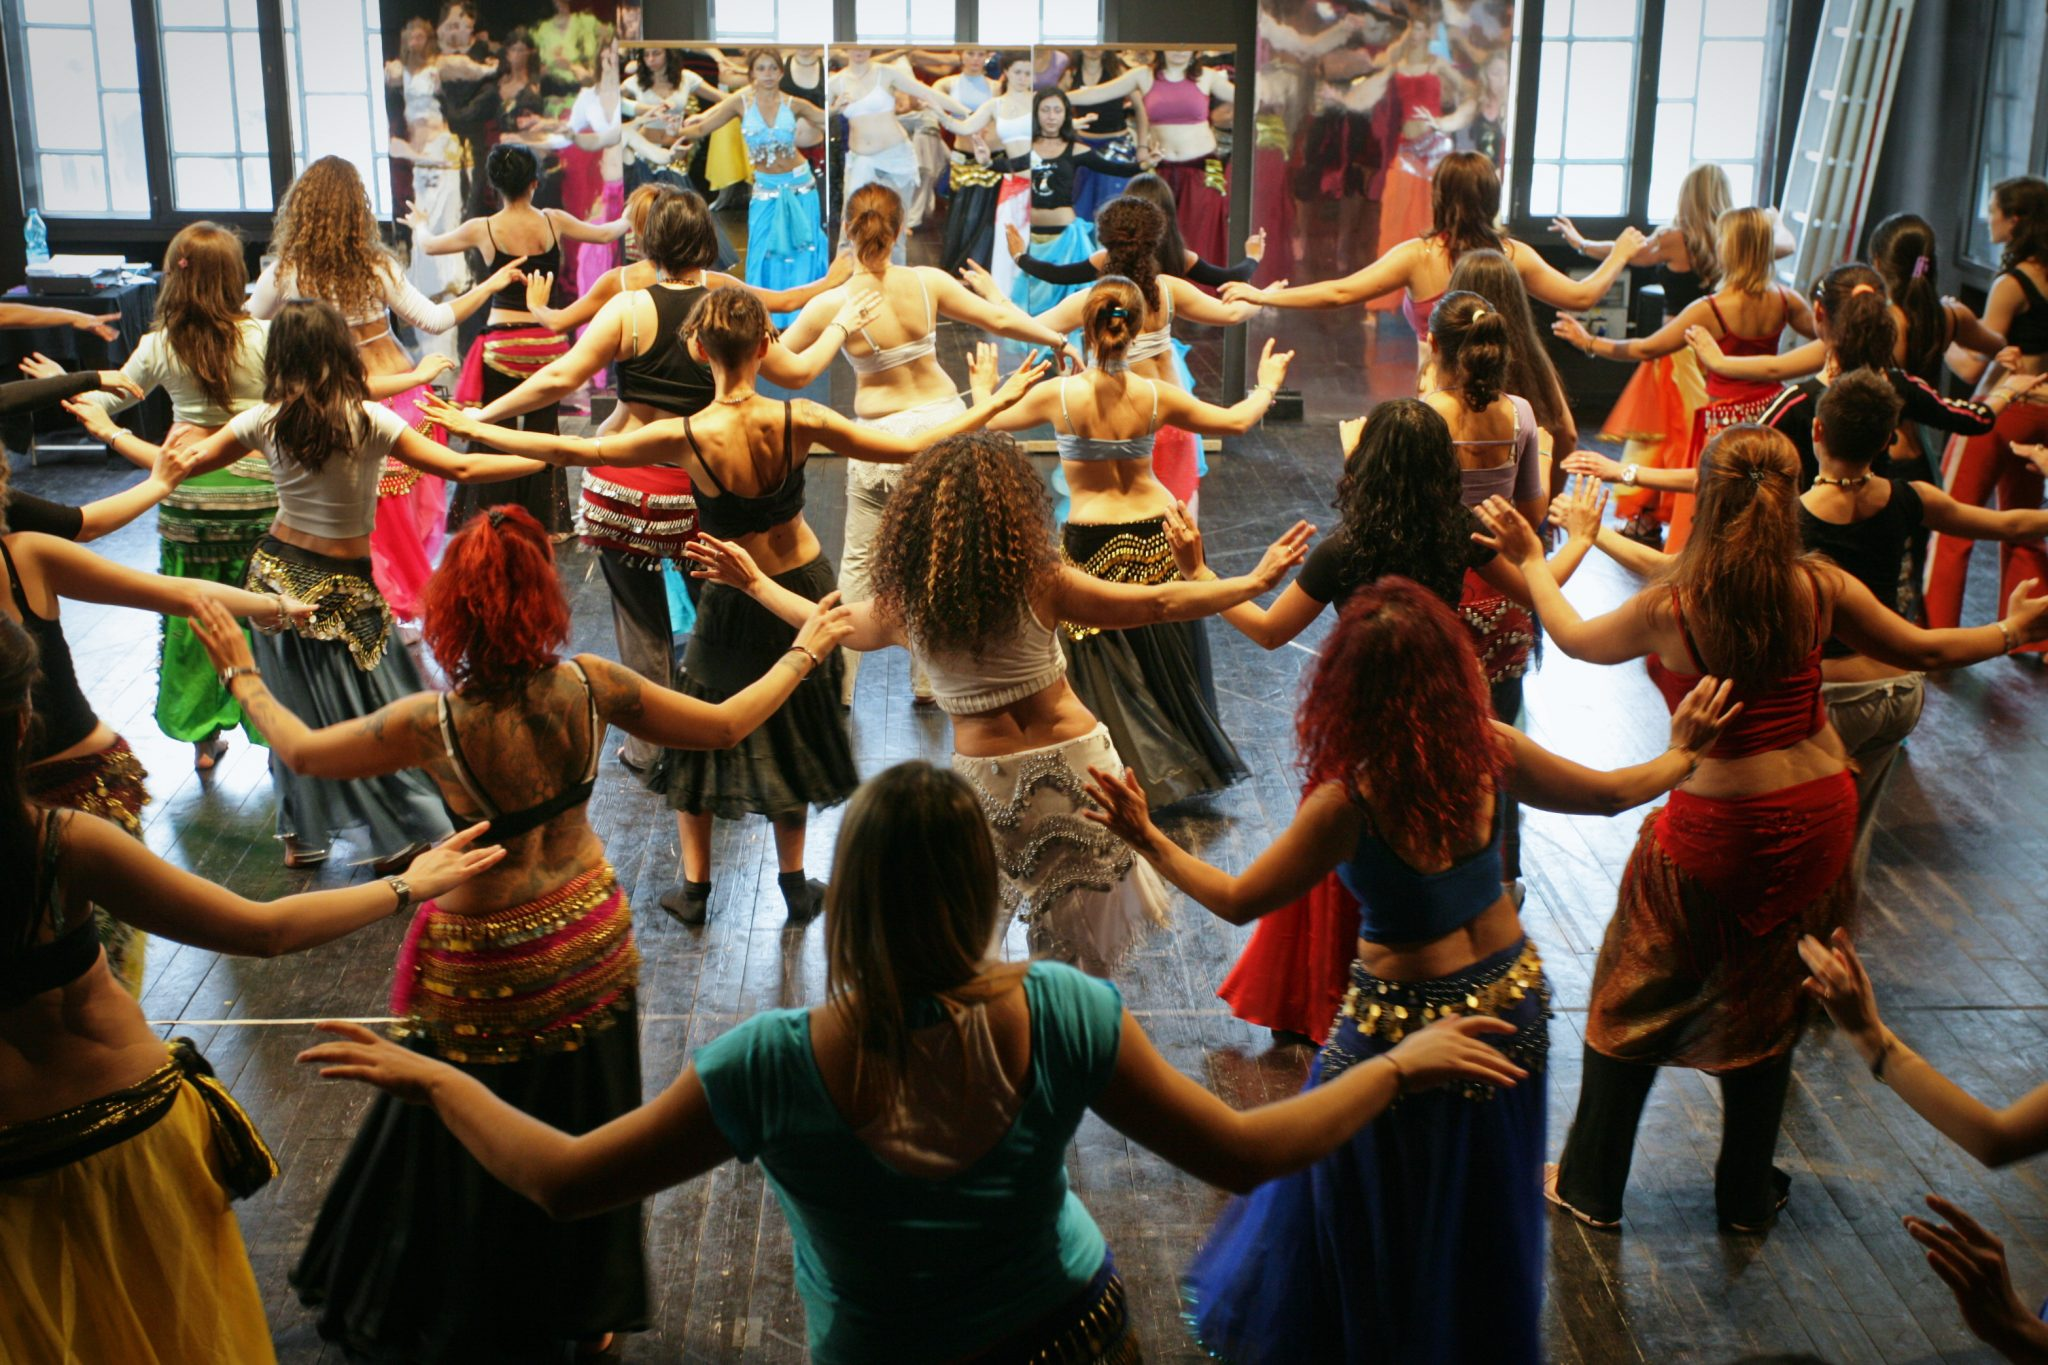 bellydancer belly dance class students bellydance dancers workshop sera sehara asheville nc